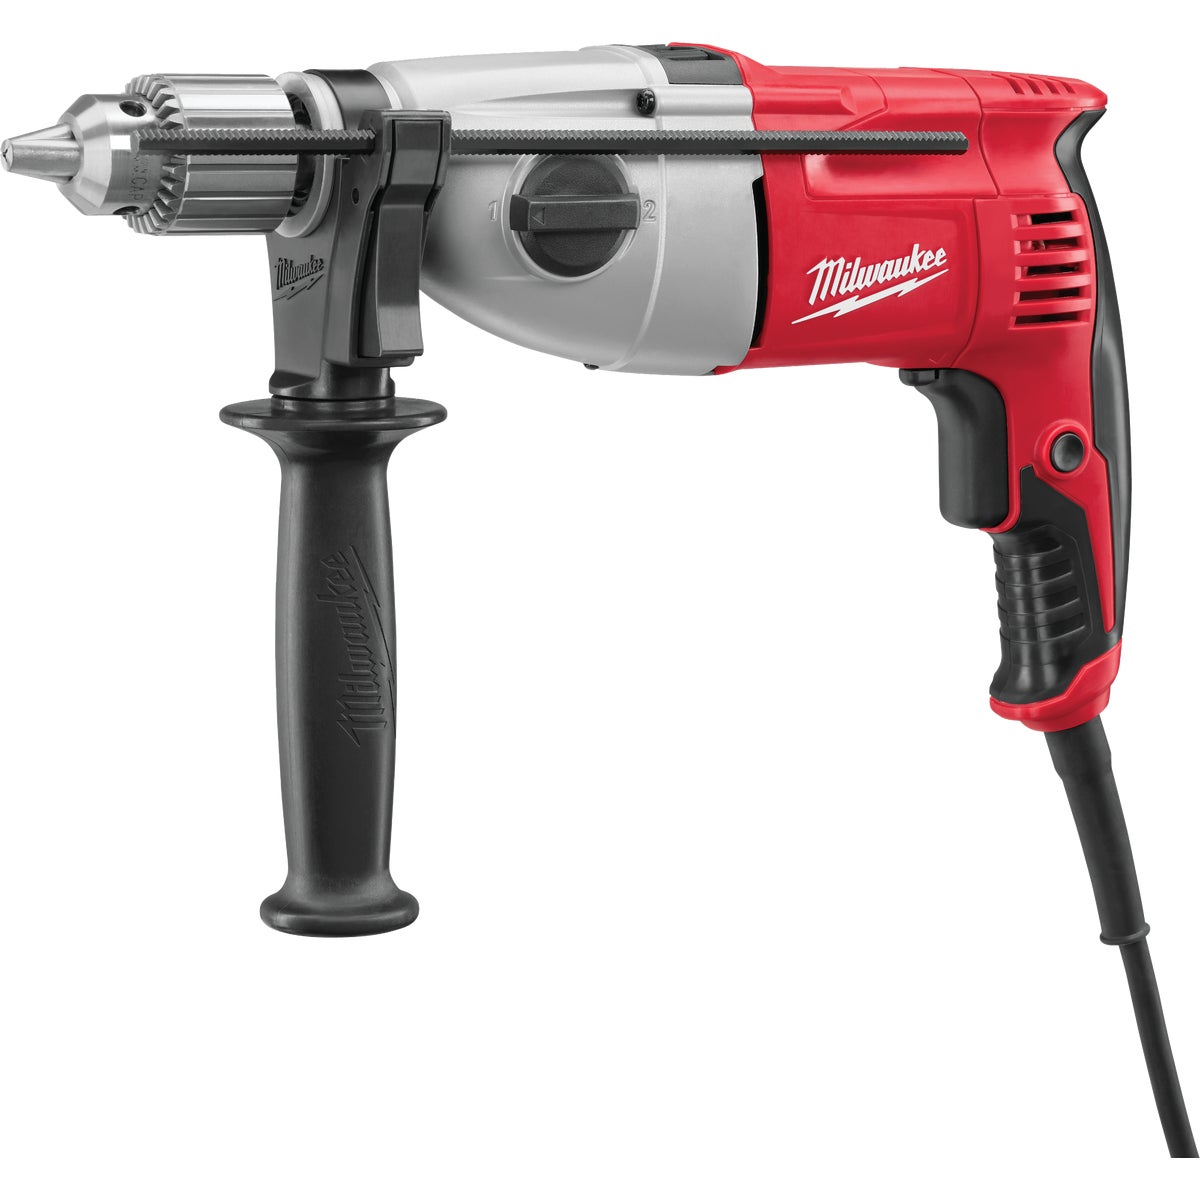 "1/2"" HAMMER DRILL - 537821 by Milwaukee Elec Tool"